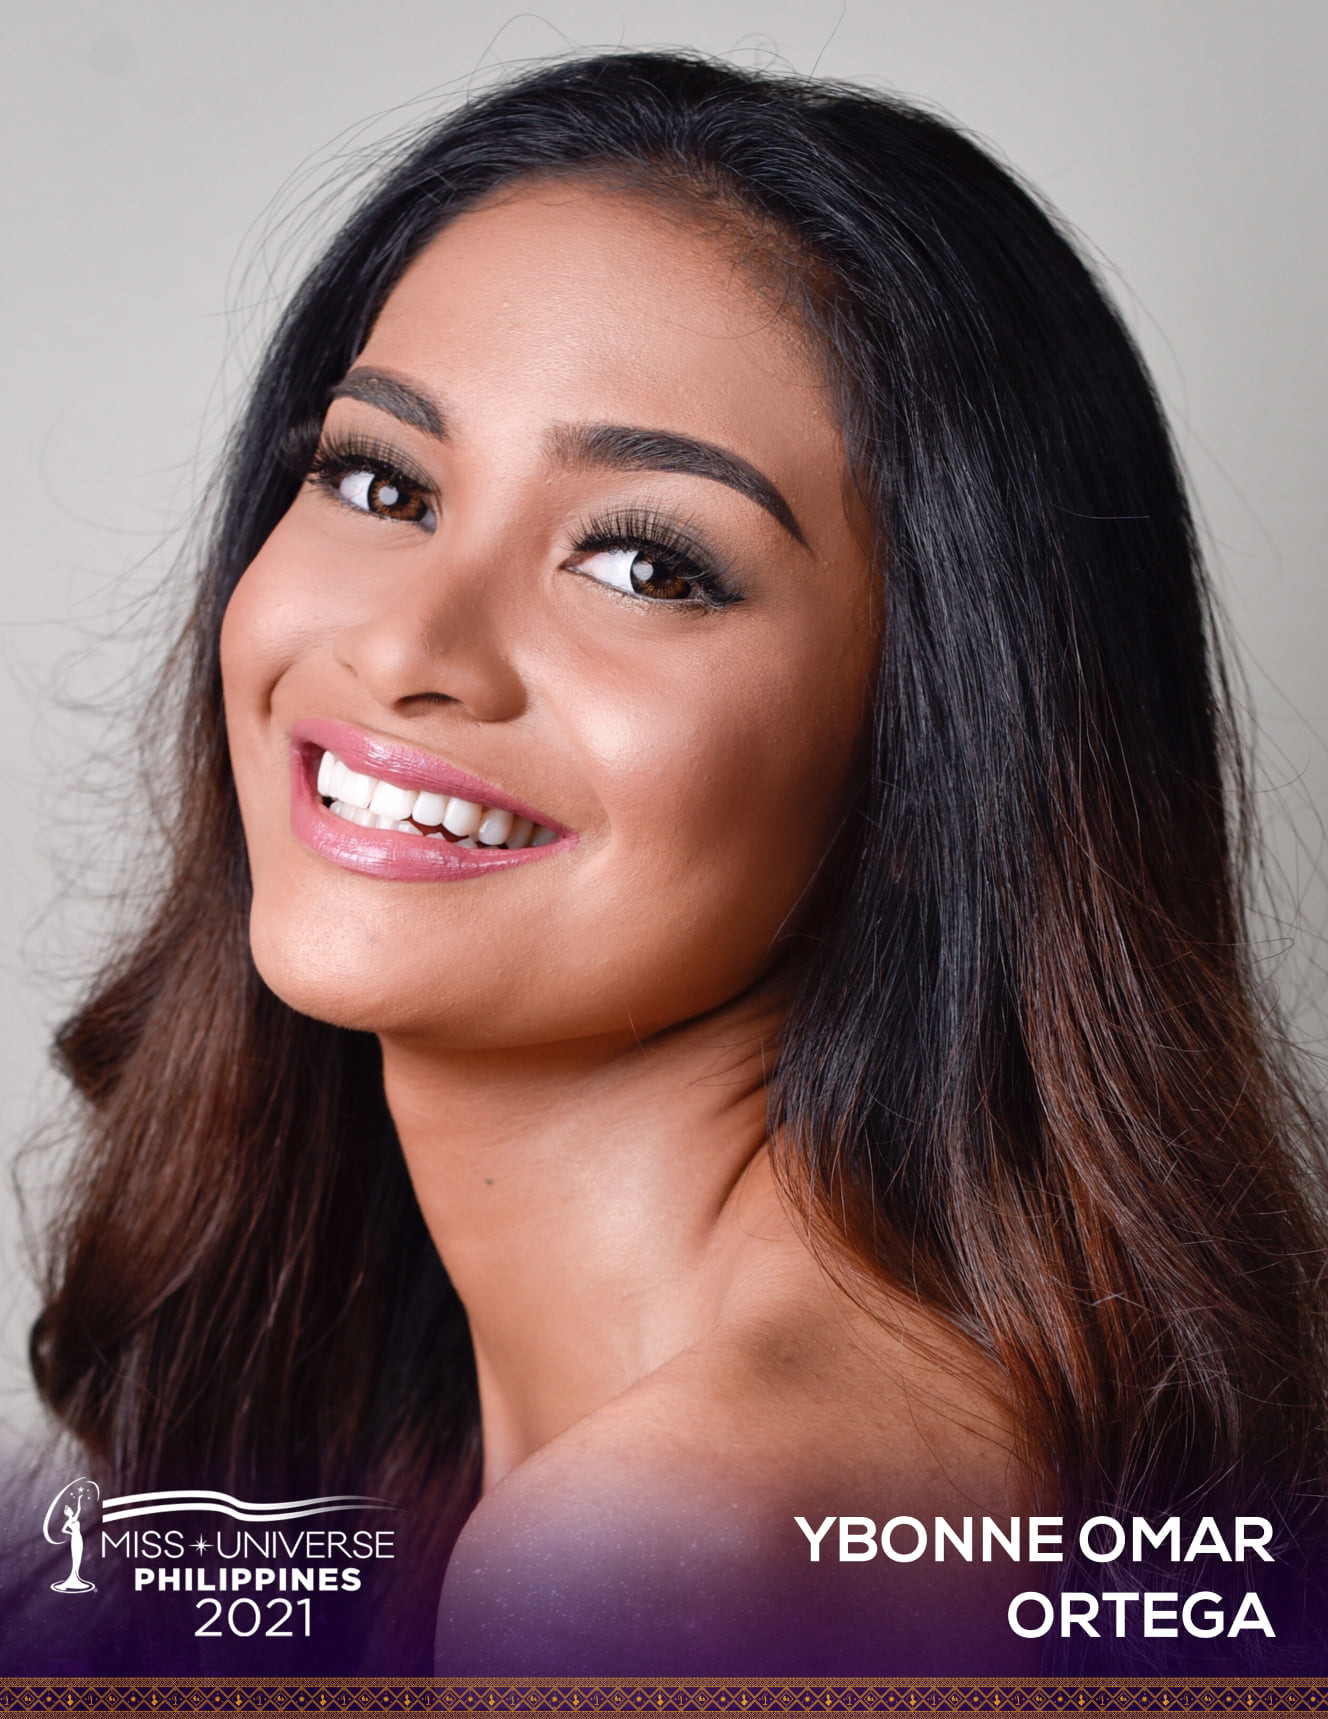 pre-candidatas a miss universe philippines 2021. - Página 2 AlKoil